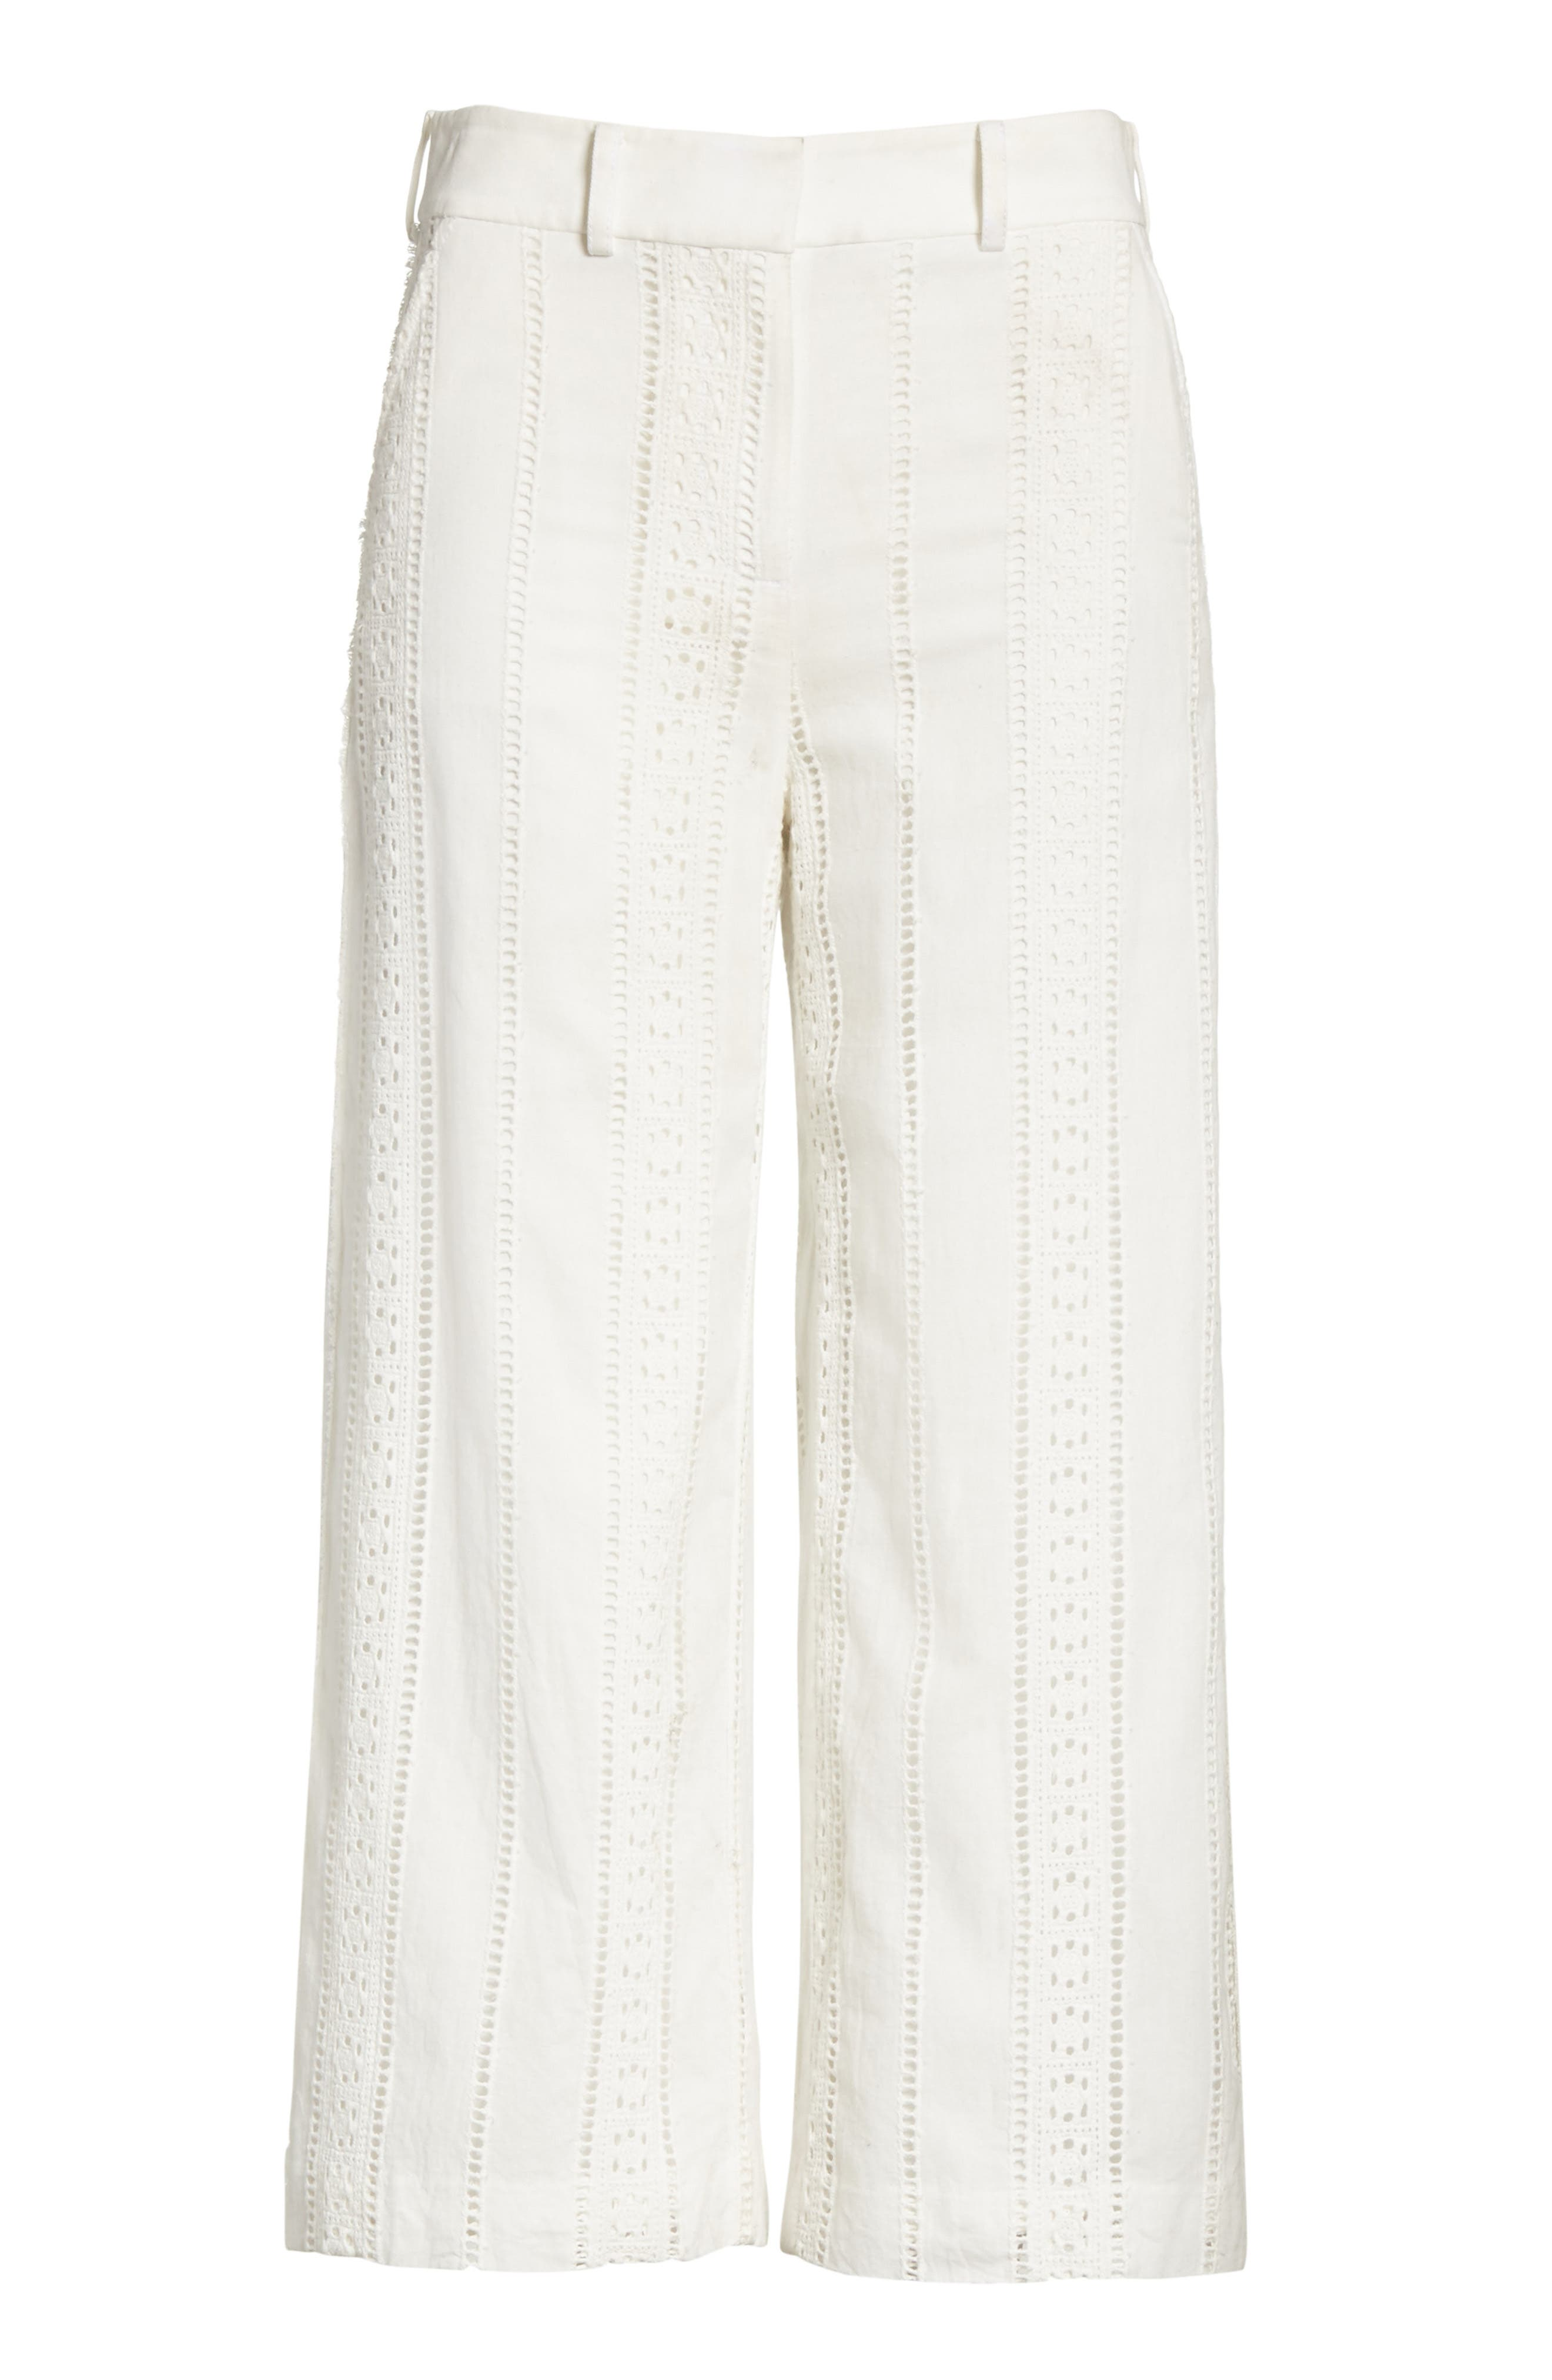 Leta Eyelet Gaucho Pants,                             Alternate thumbnail 6, color,                             White